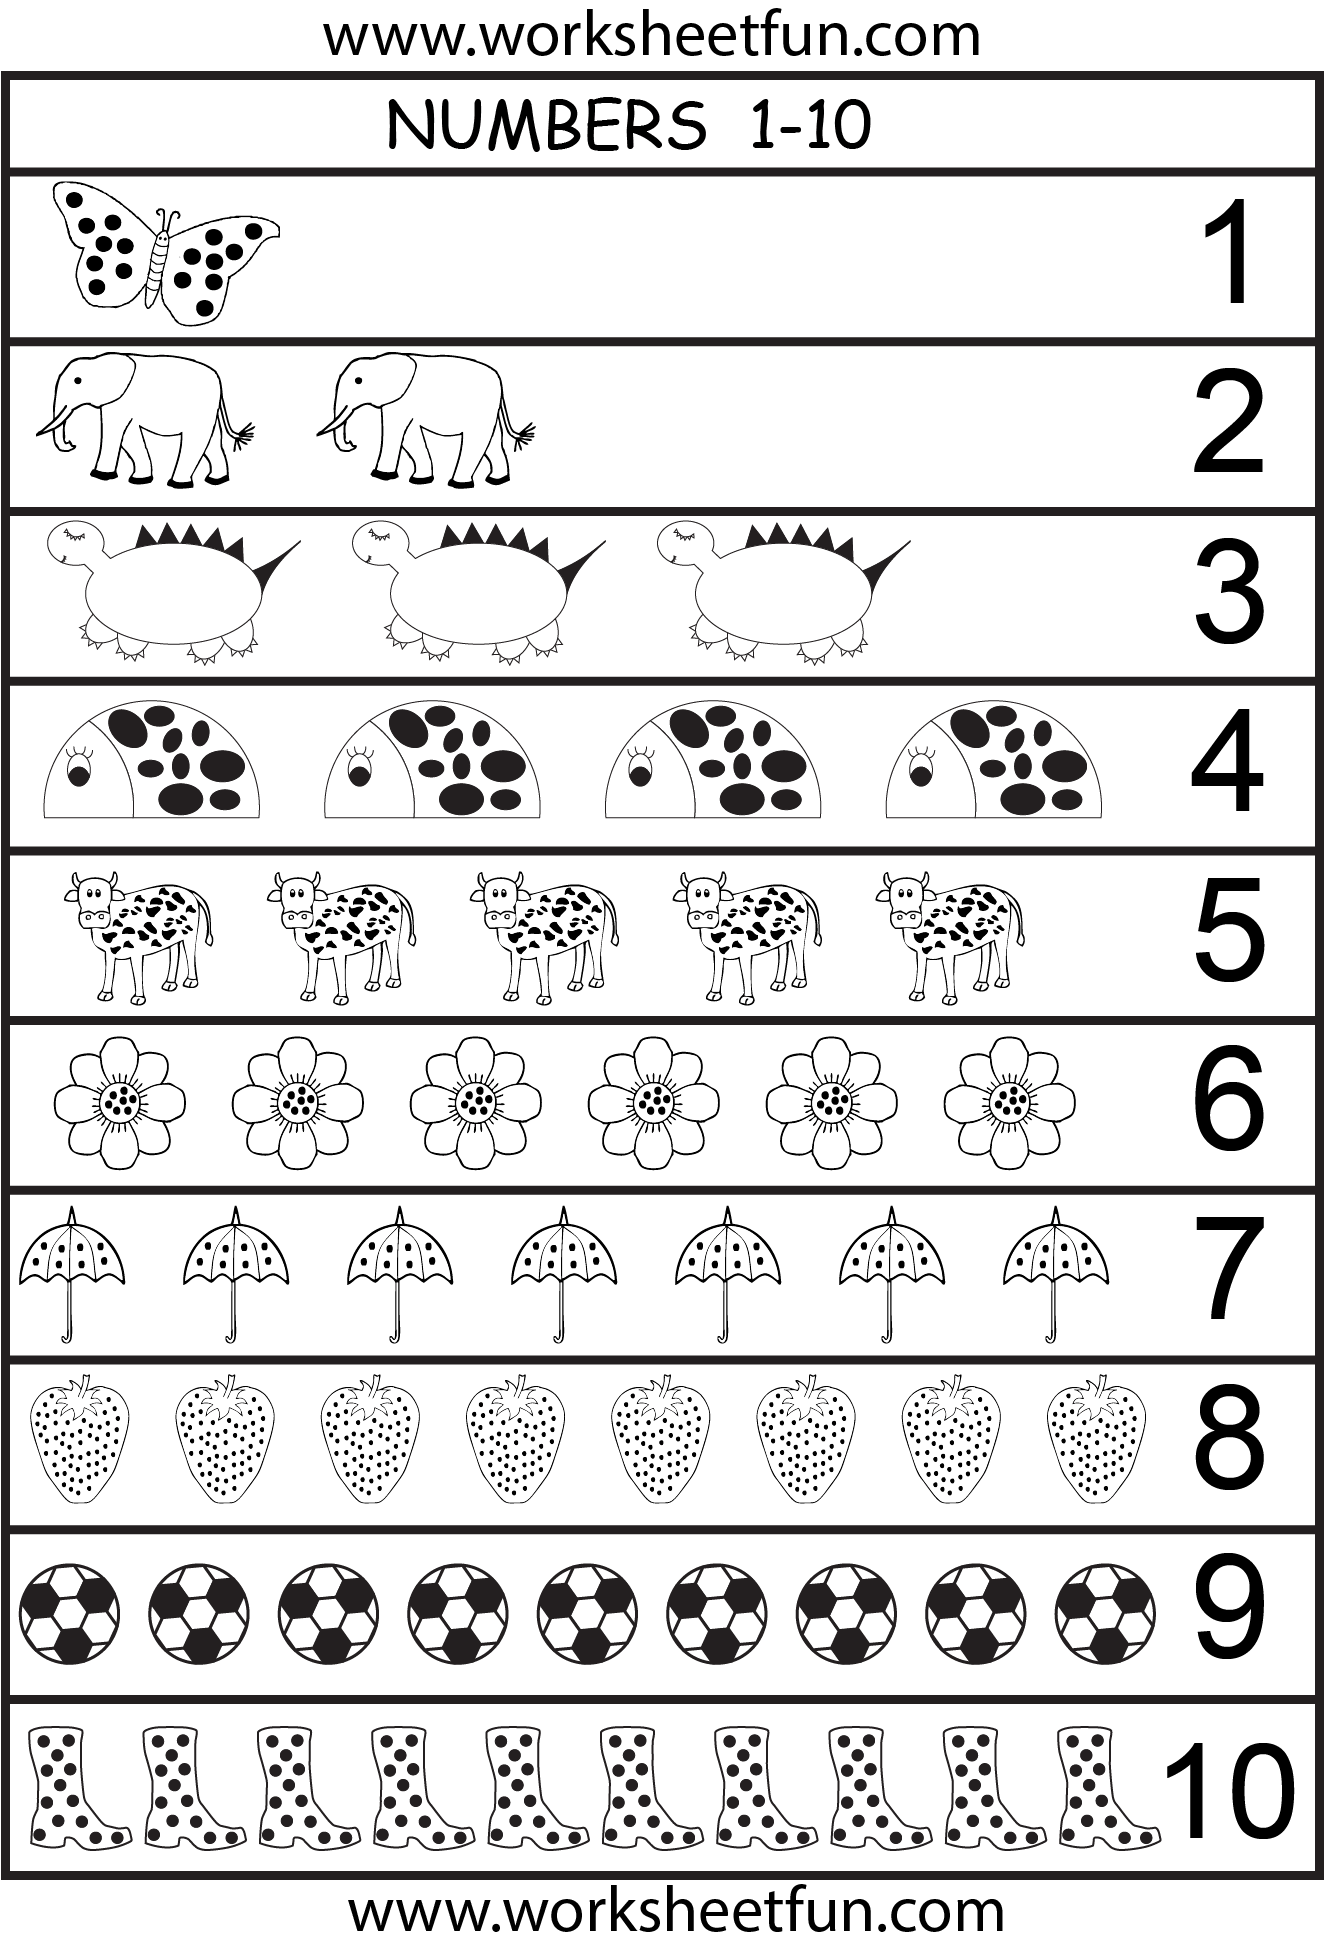 Tally Marks Worksheet Counting To 10